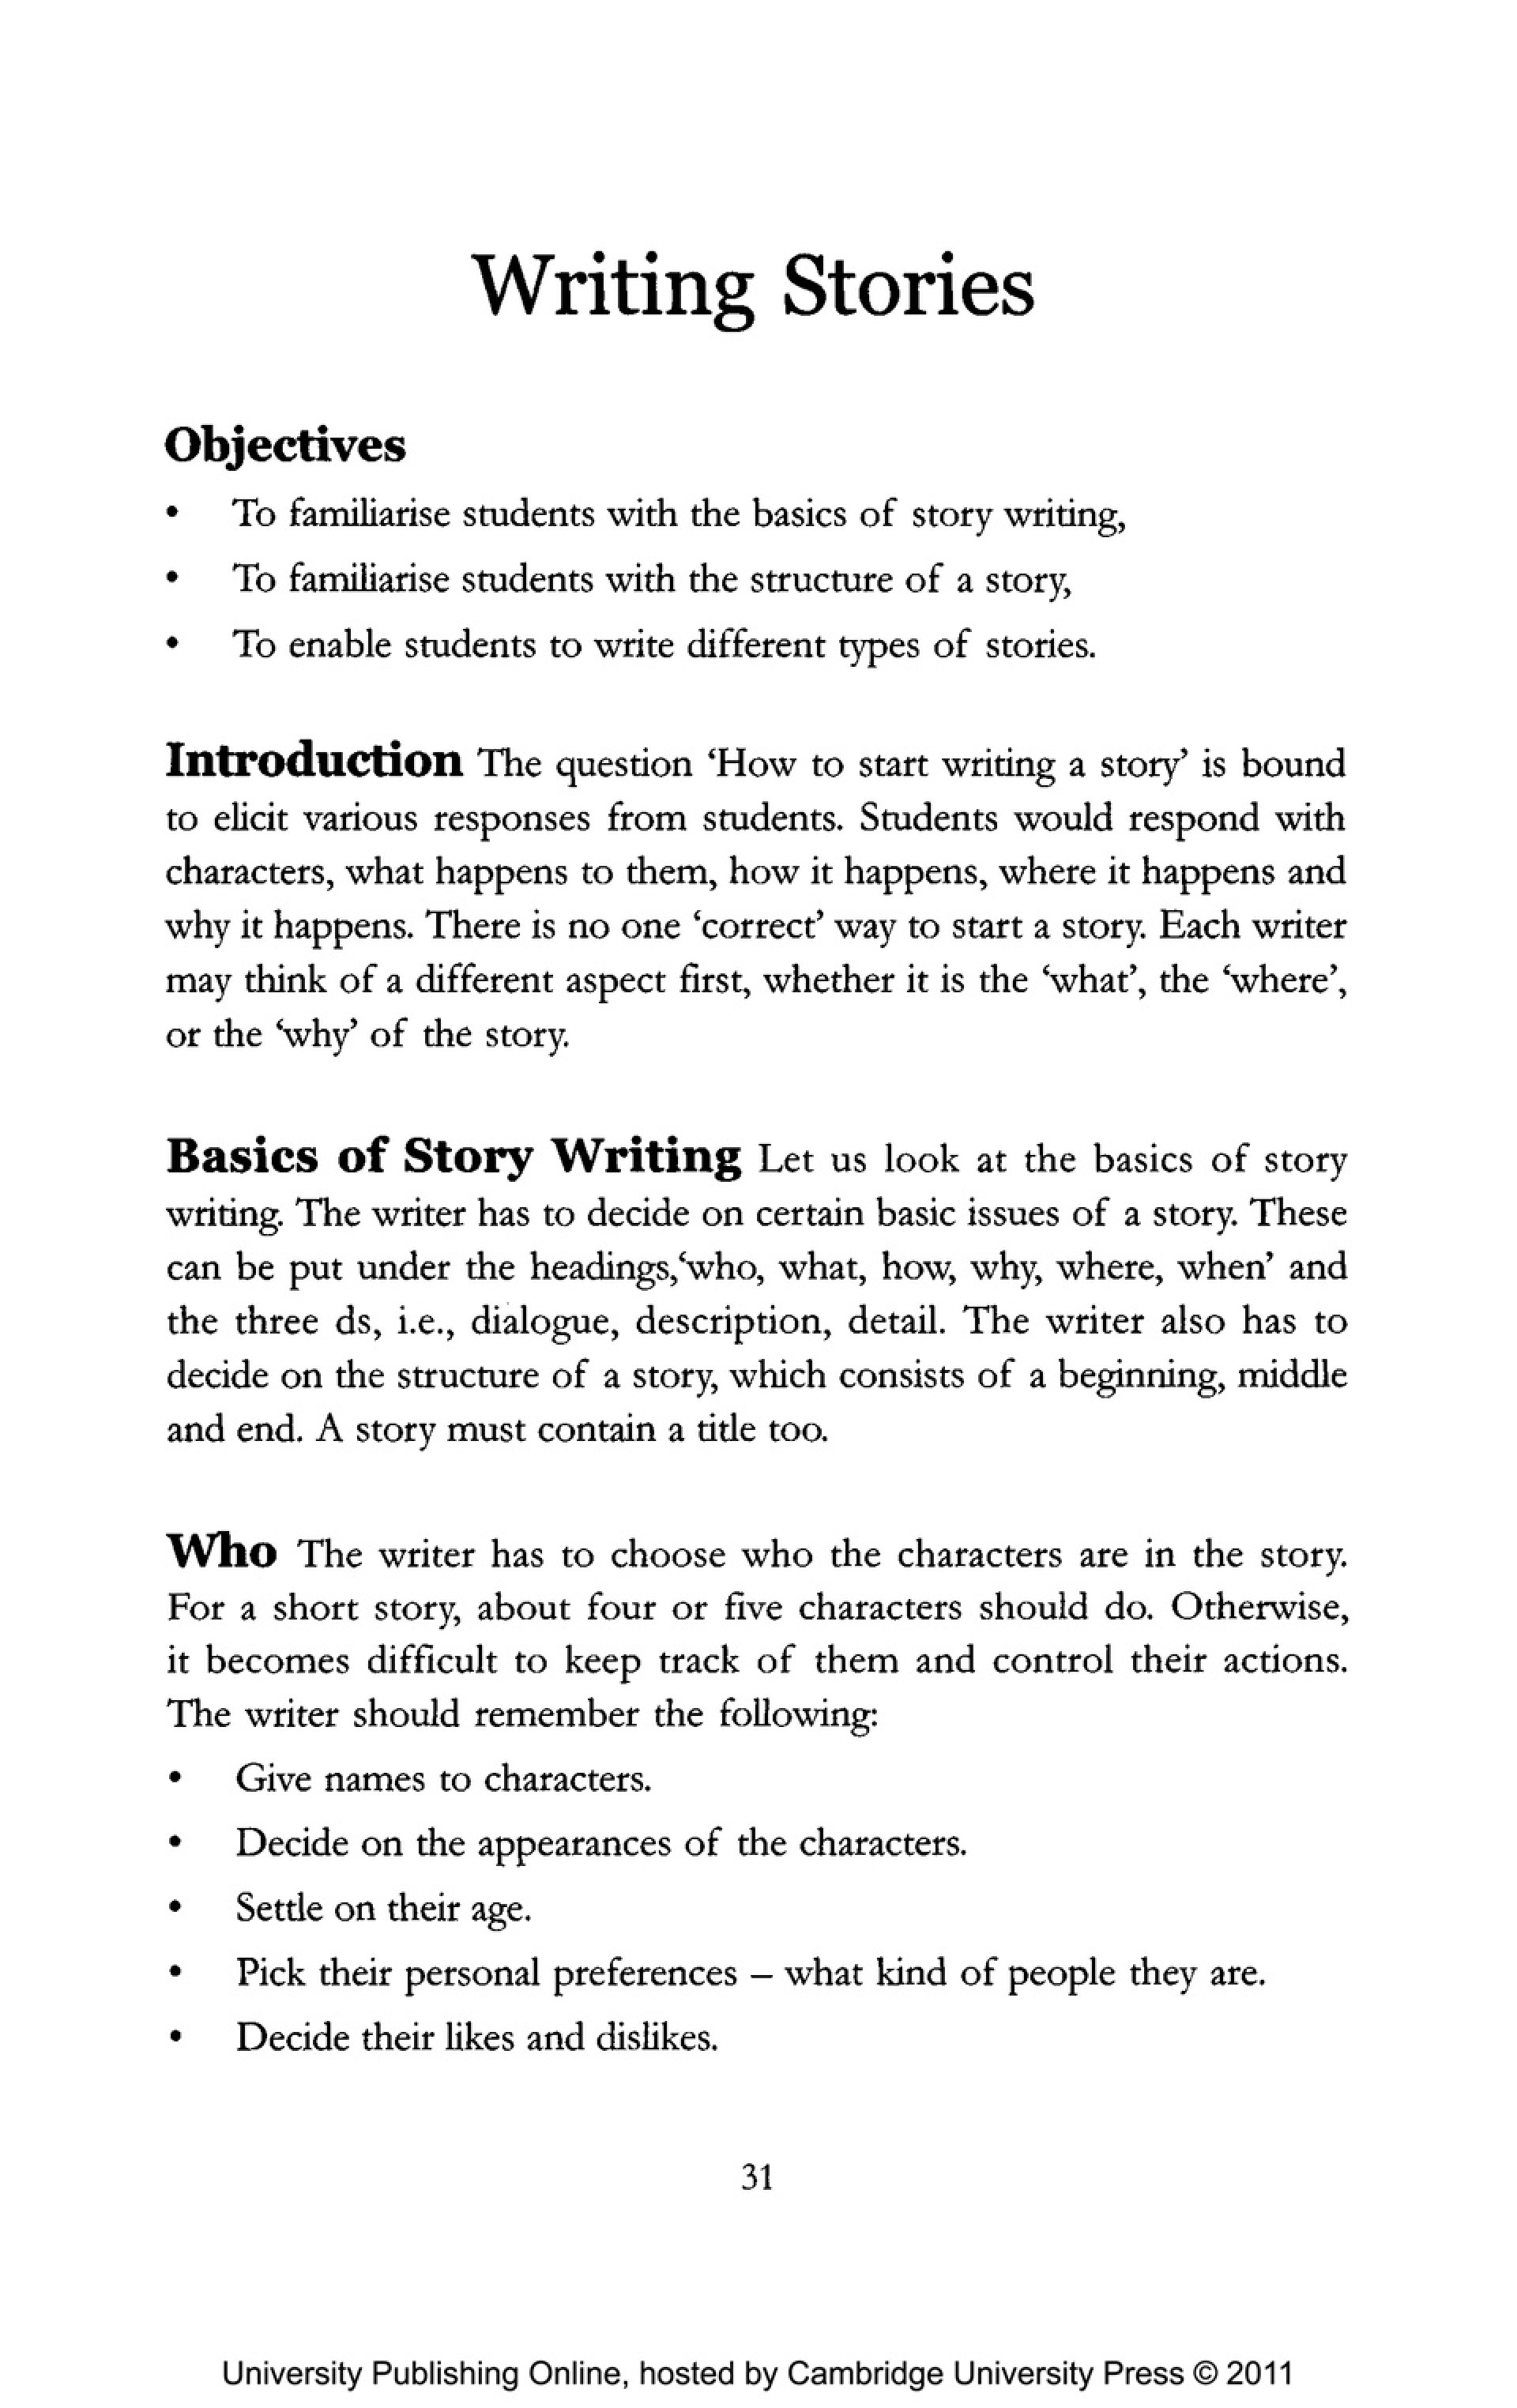 015 Short Stories In Essays Essay Example Dialogue Write Story How To Sample Research Paper 9788175968714c2 Abstrac Comparison An Introduction For Title Good Conclusion The Of Impressive Fiction Analysis Examples Format 1920